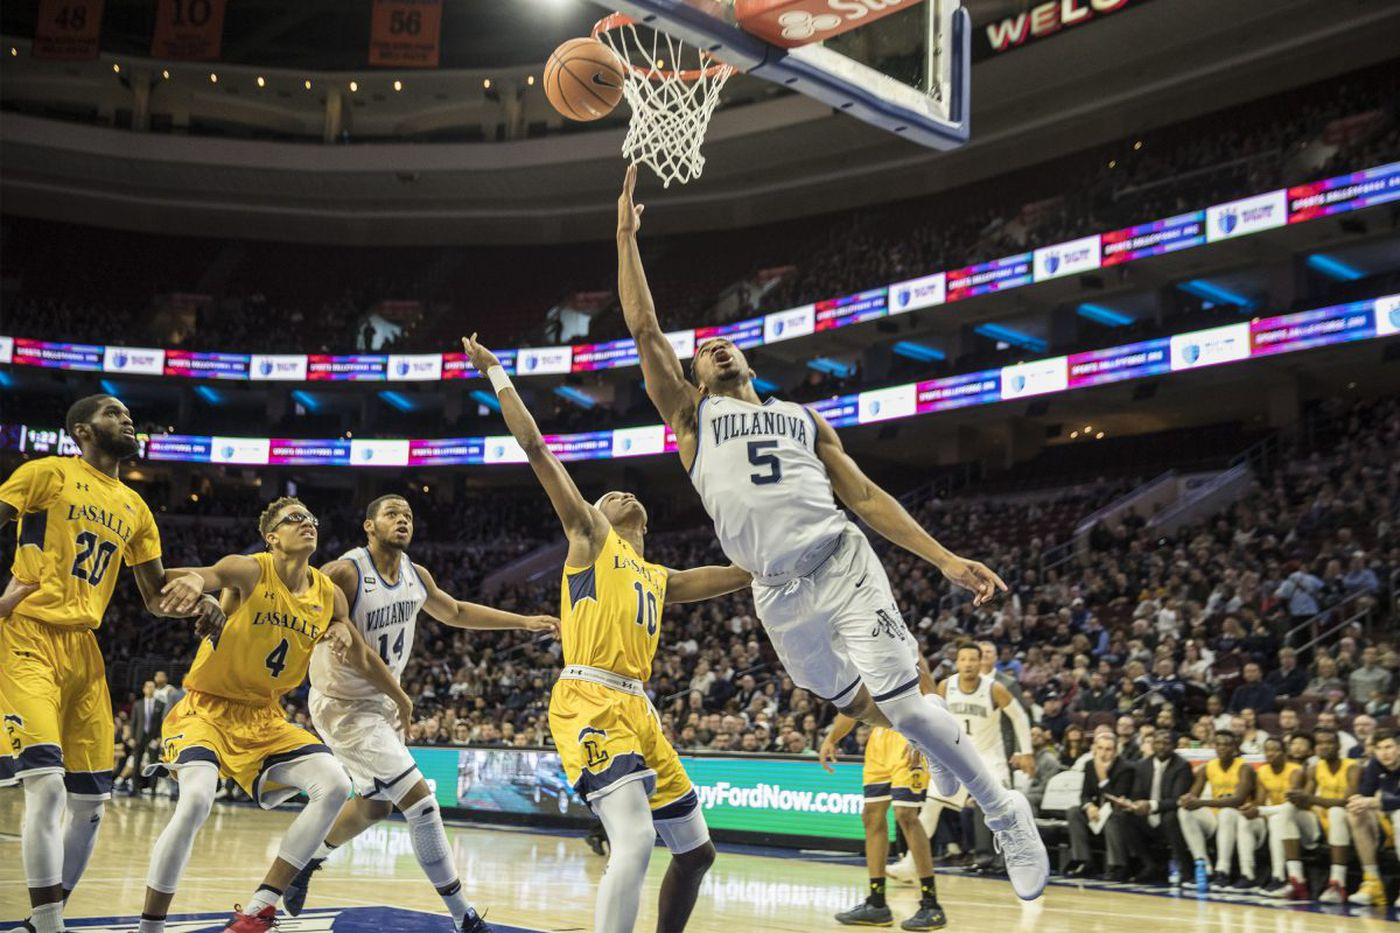 Villanova pushed to the limit by La Salle but wins, 77-68